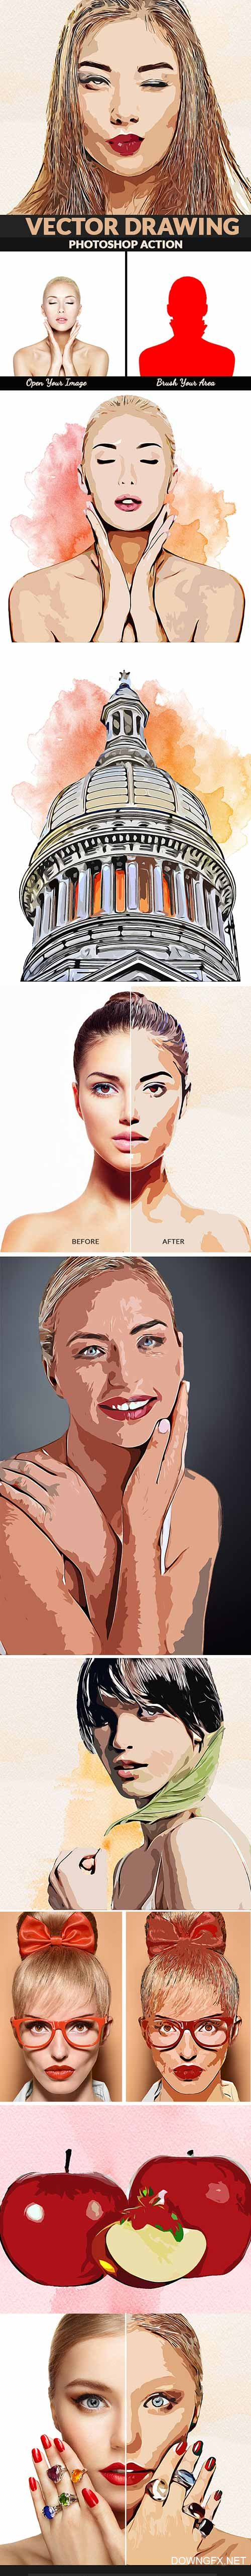 GraphicRiver - Vector Drawing Photoshop Action 22405523